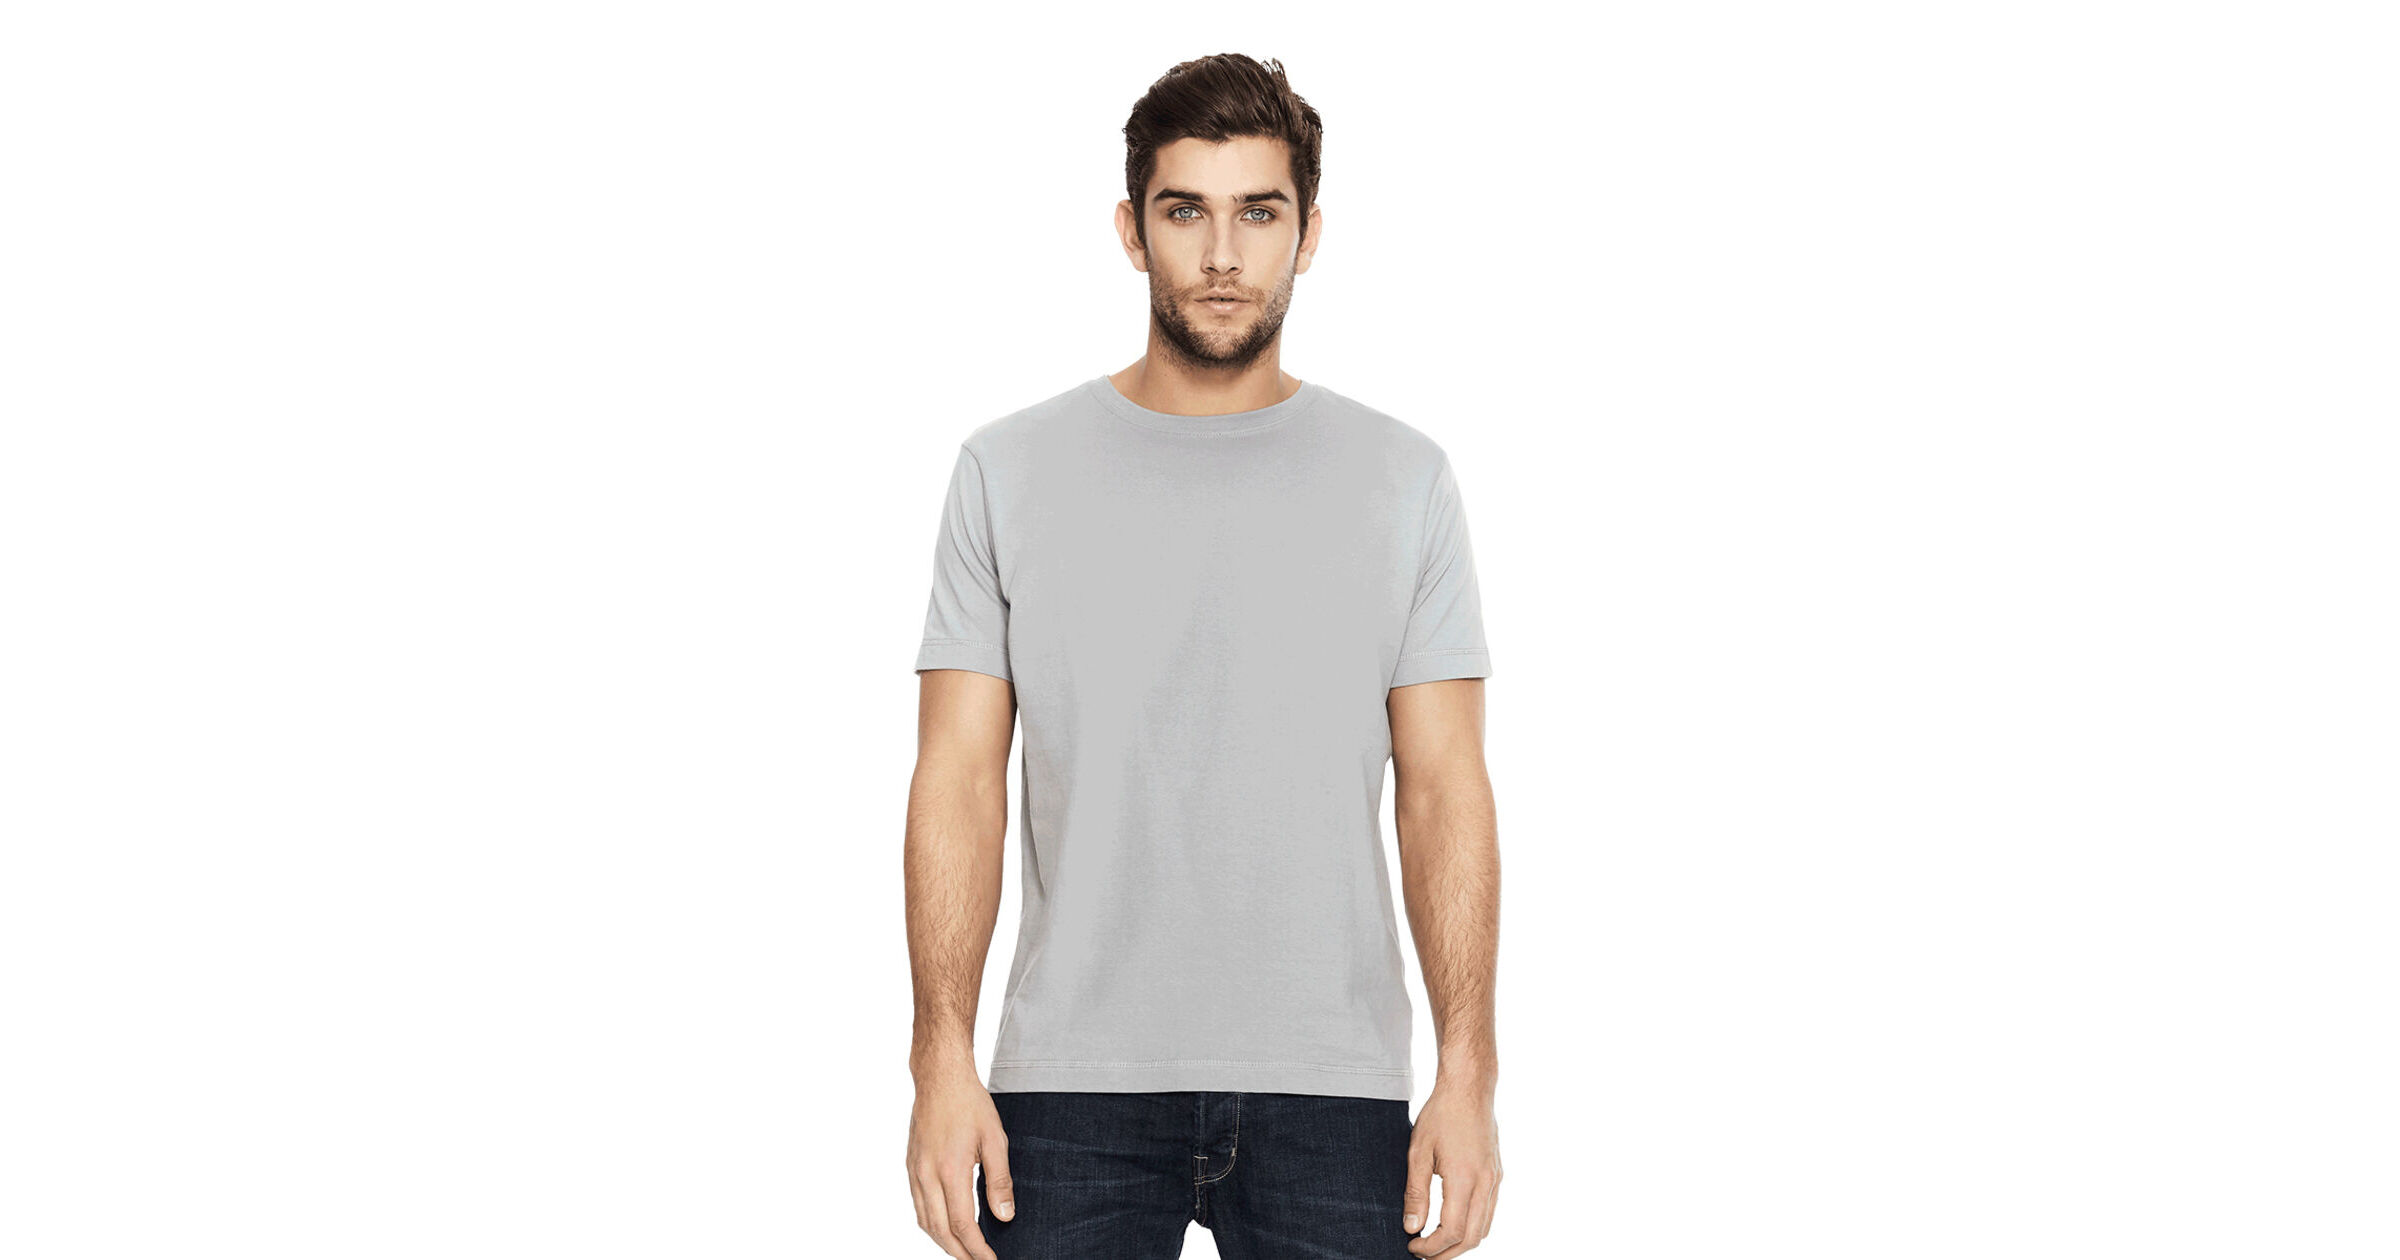 N03 Classic Cut Jersey Men's T Shirt